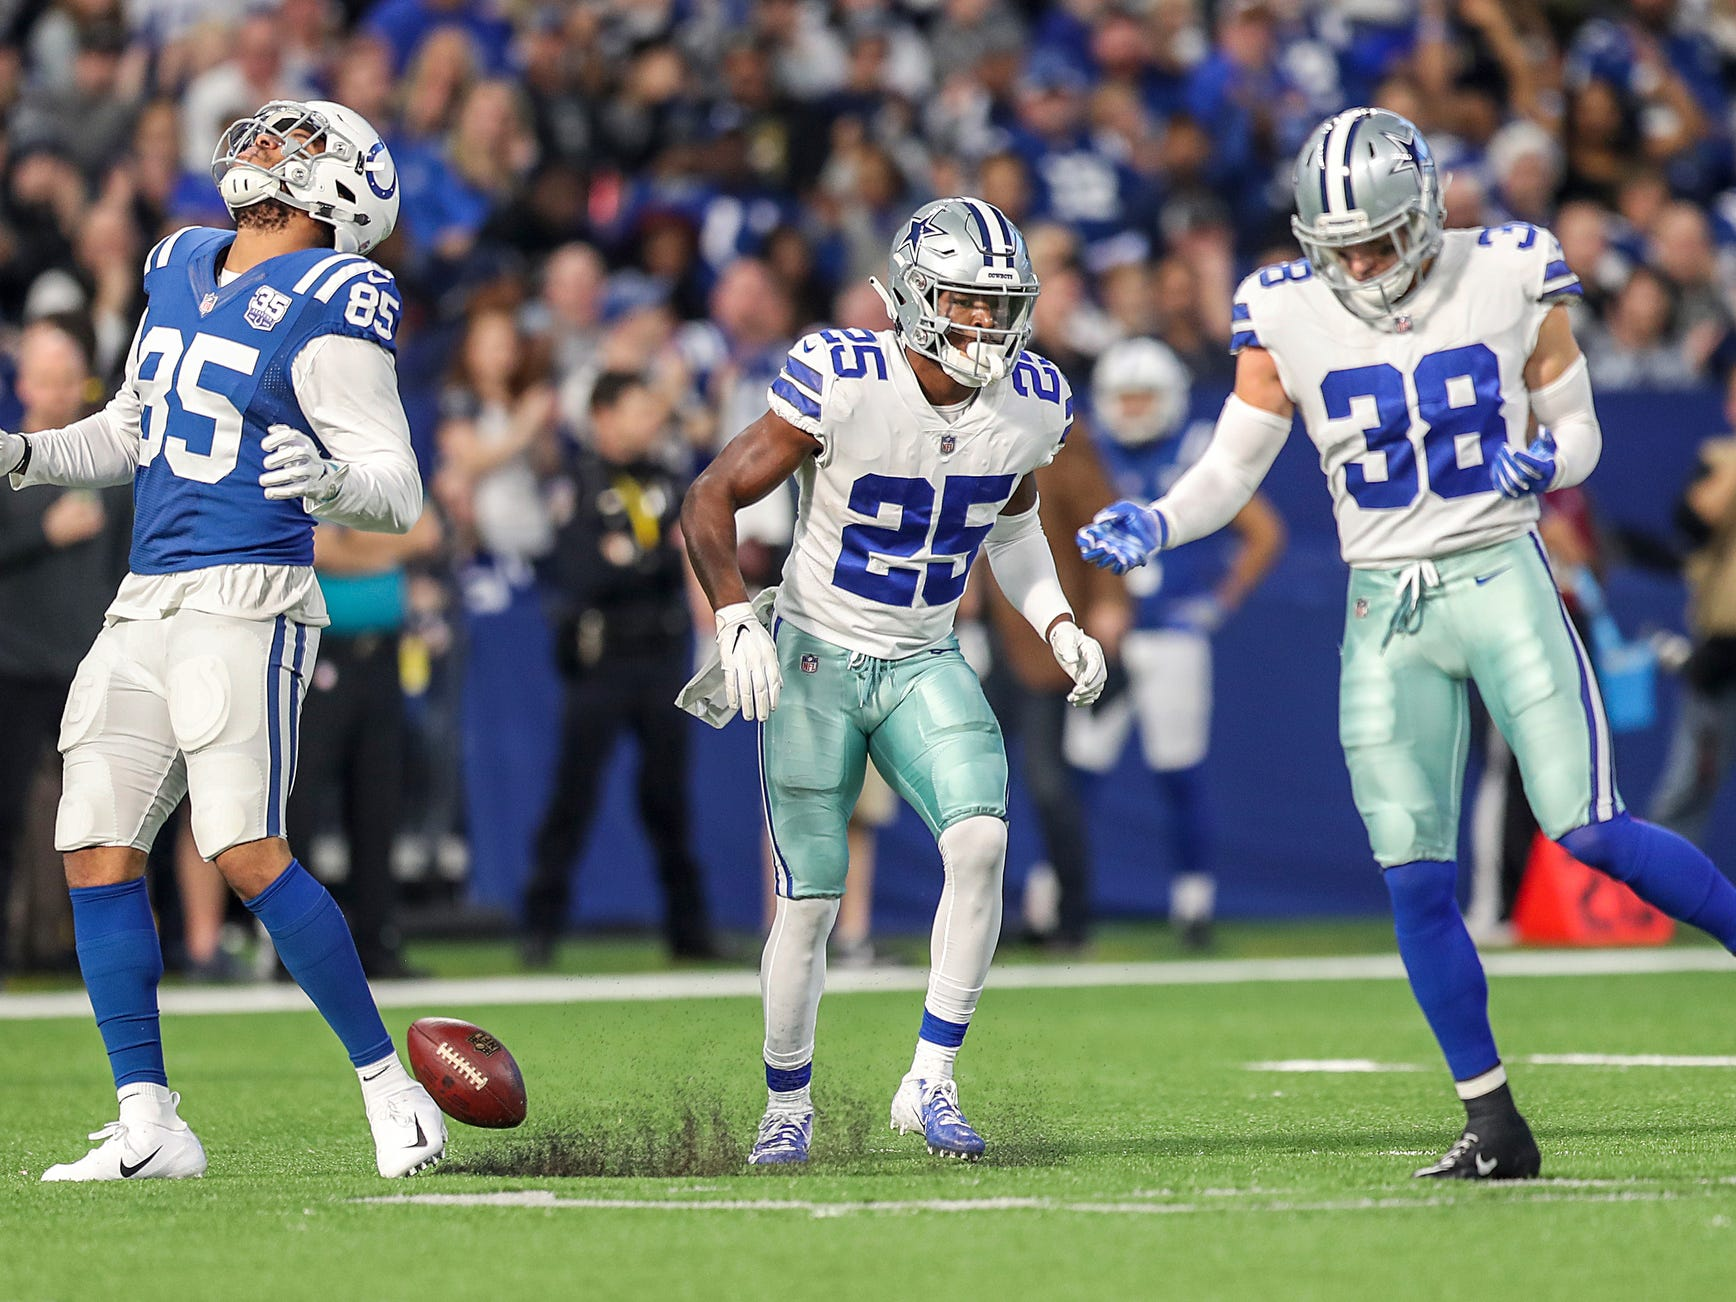 Indianapolis Colts tight end Eric Ebron (85) shows dejection after Dallas Cowboys strong safety Jeff Heath (38) kept him from receiving a pass in the first half of the game at Lucas Oil Stadium in Indianapolis, Sunday, Dec. 16, 2018.